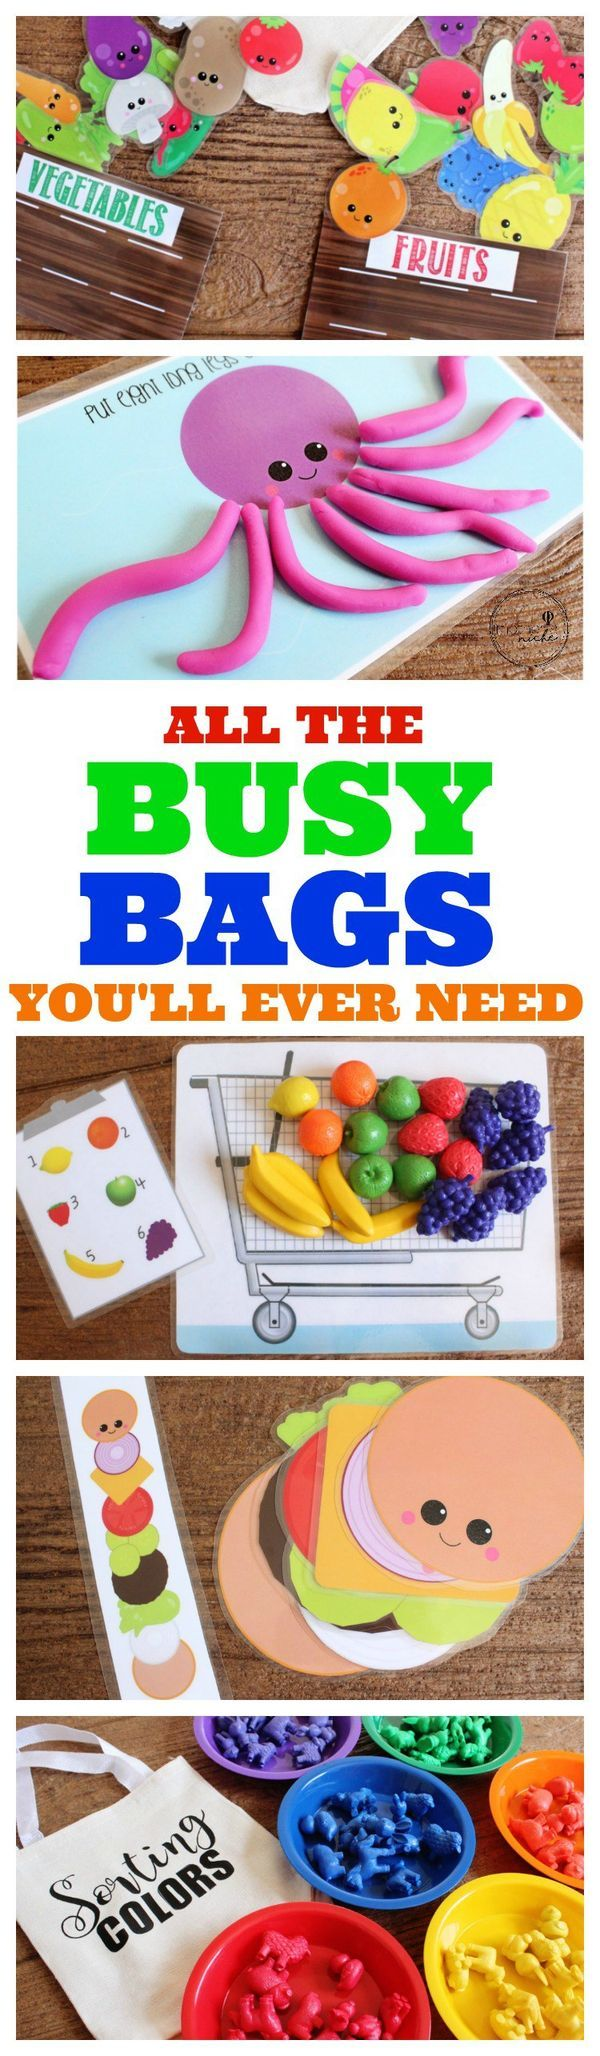 So many fun and free busy bag ideas - perfect for keeping those toddlers busy!